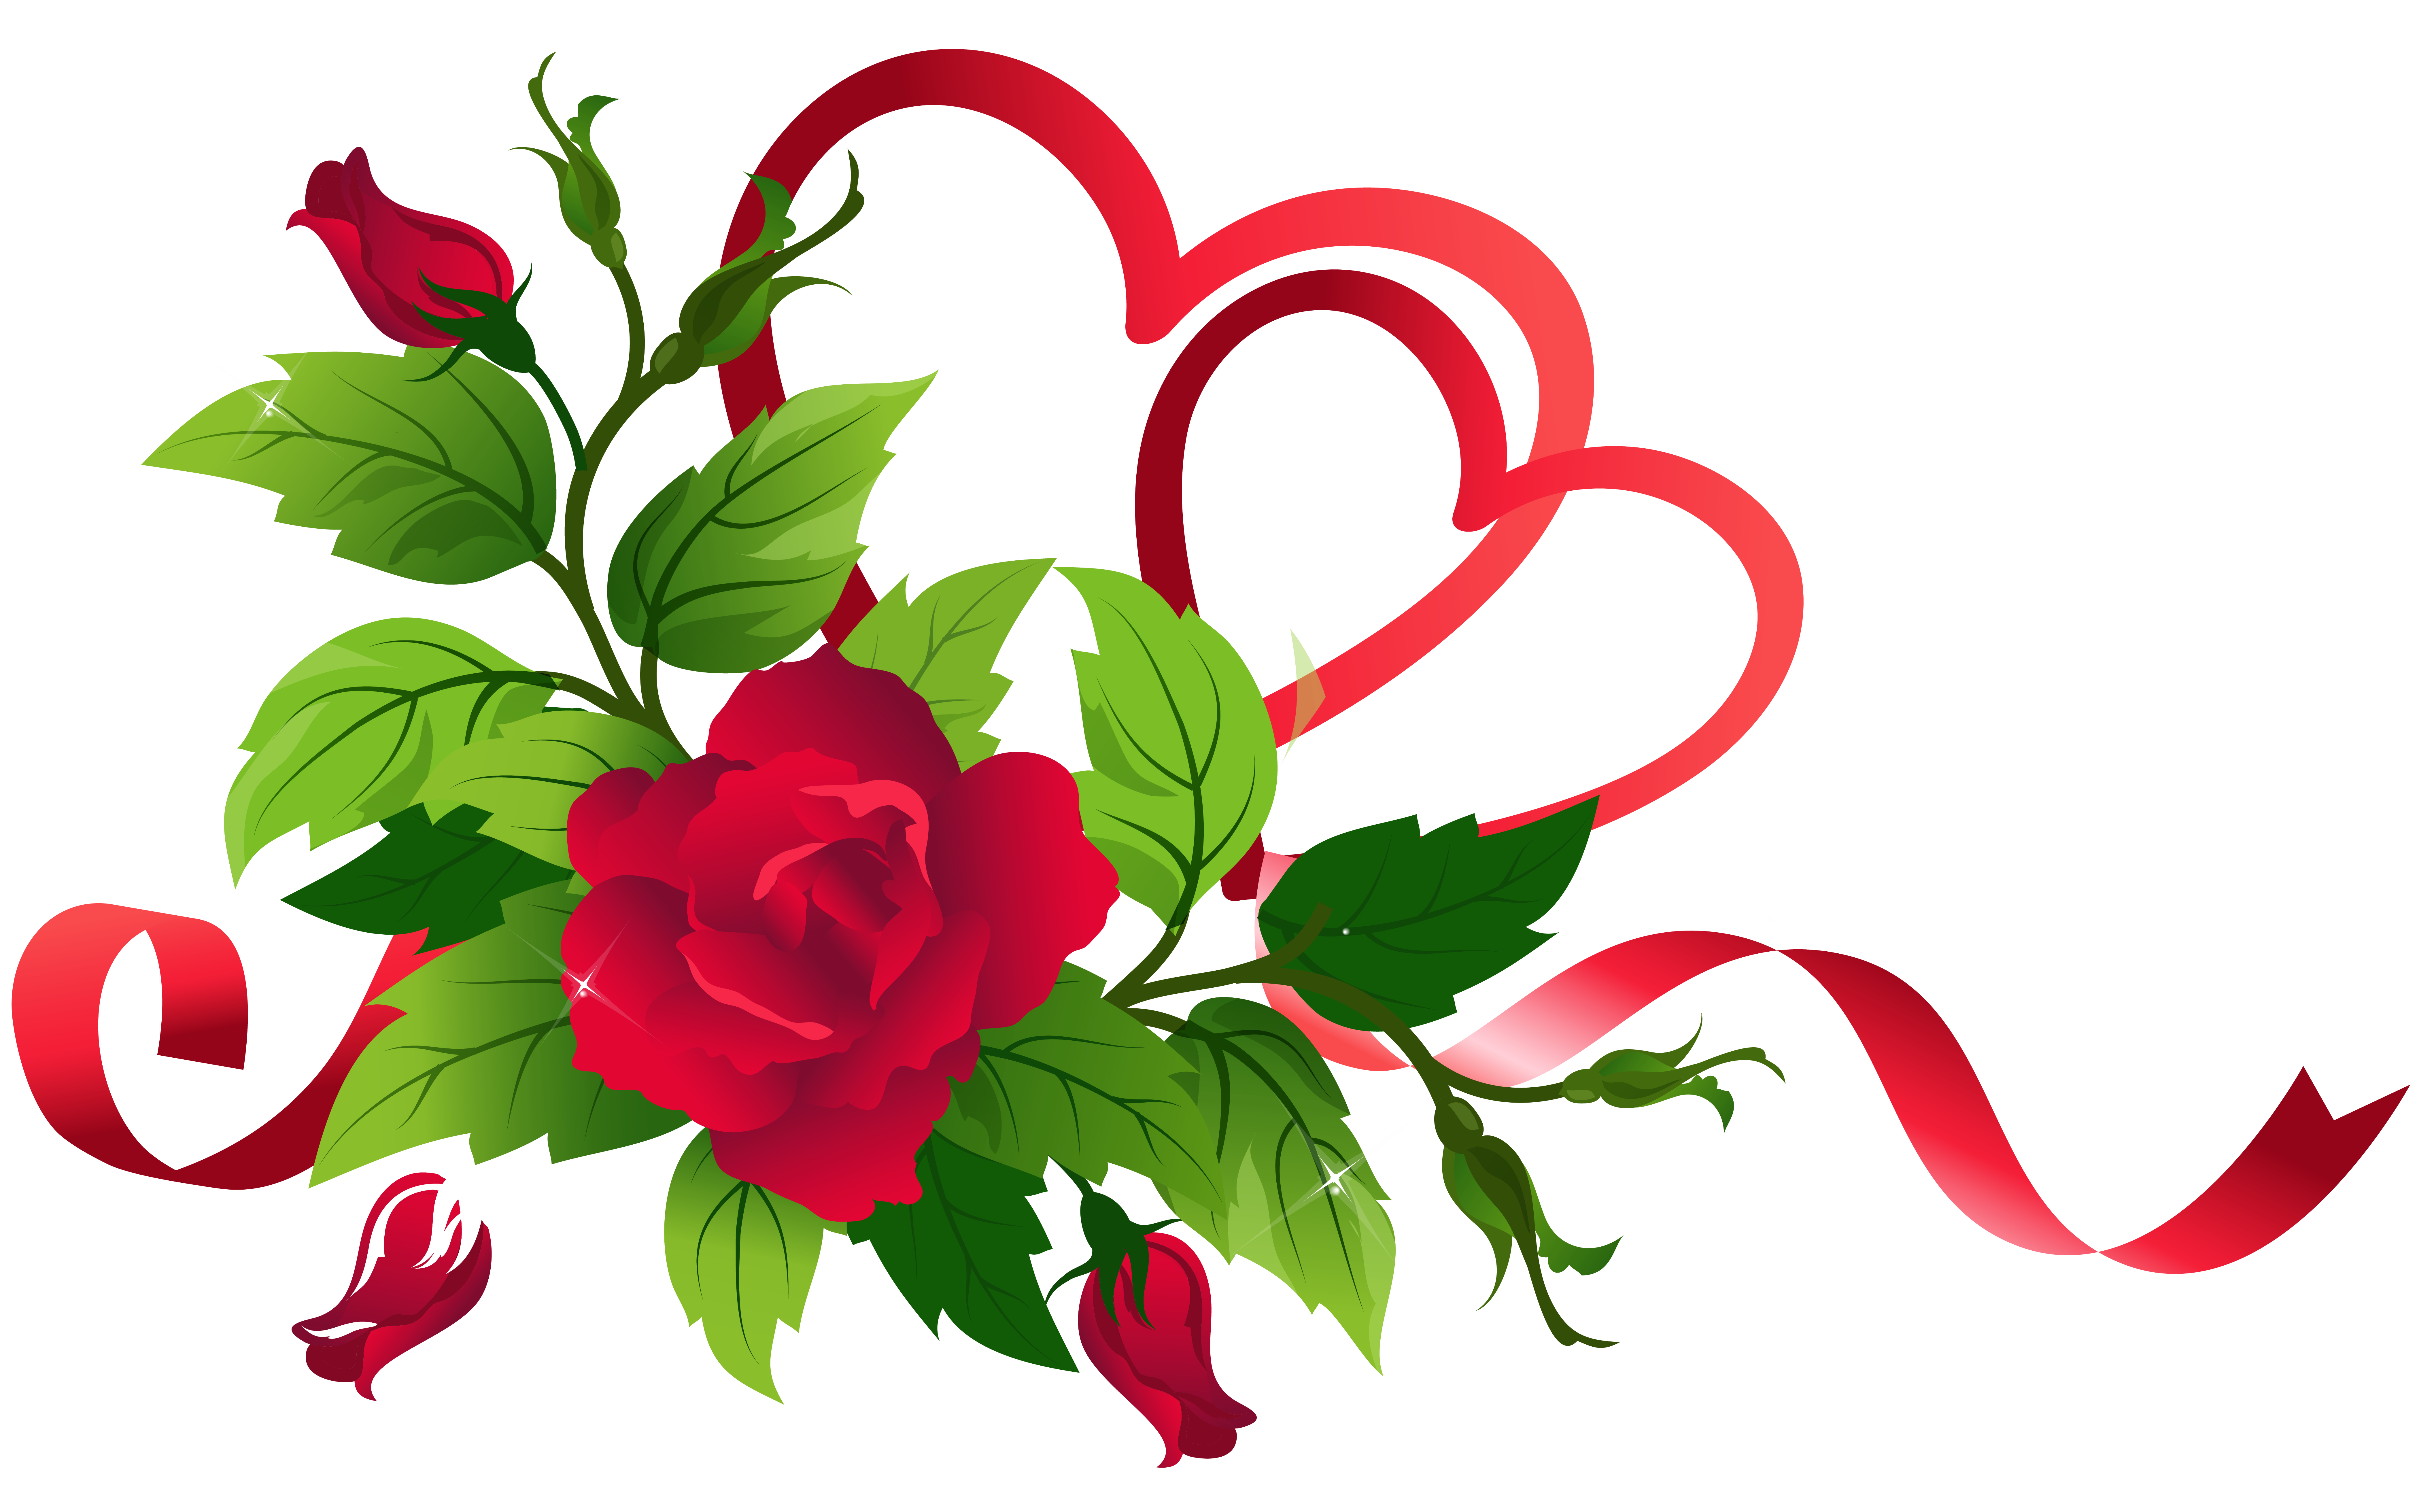 Clipart hearts rose. Transparent and roses decor